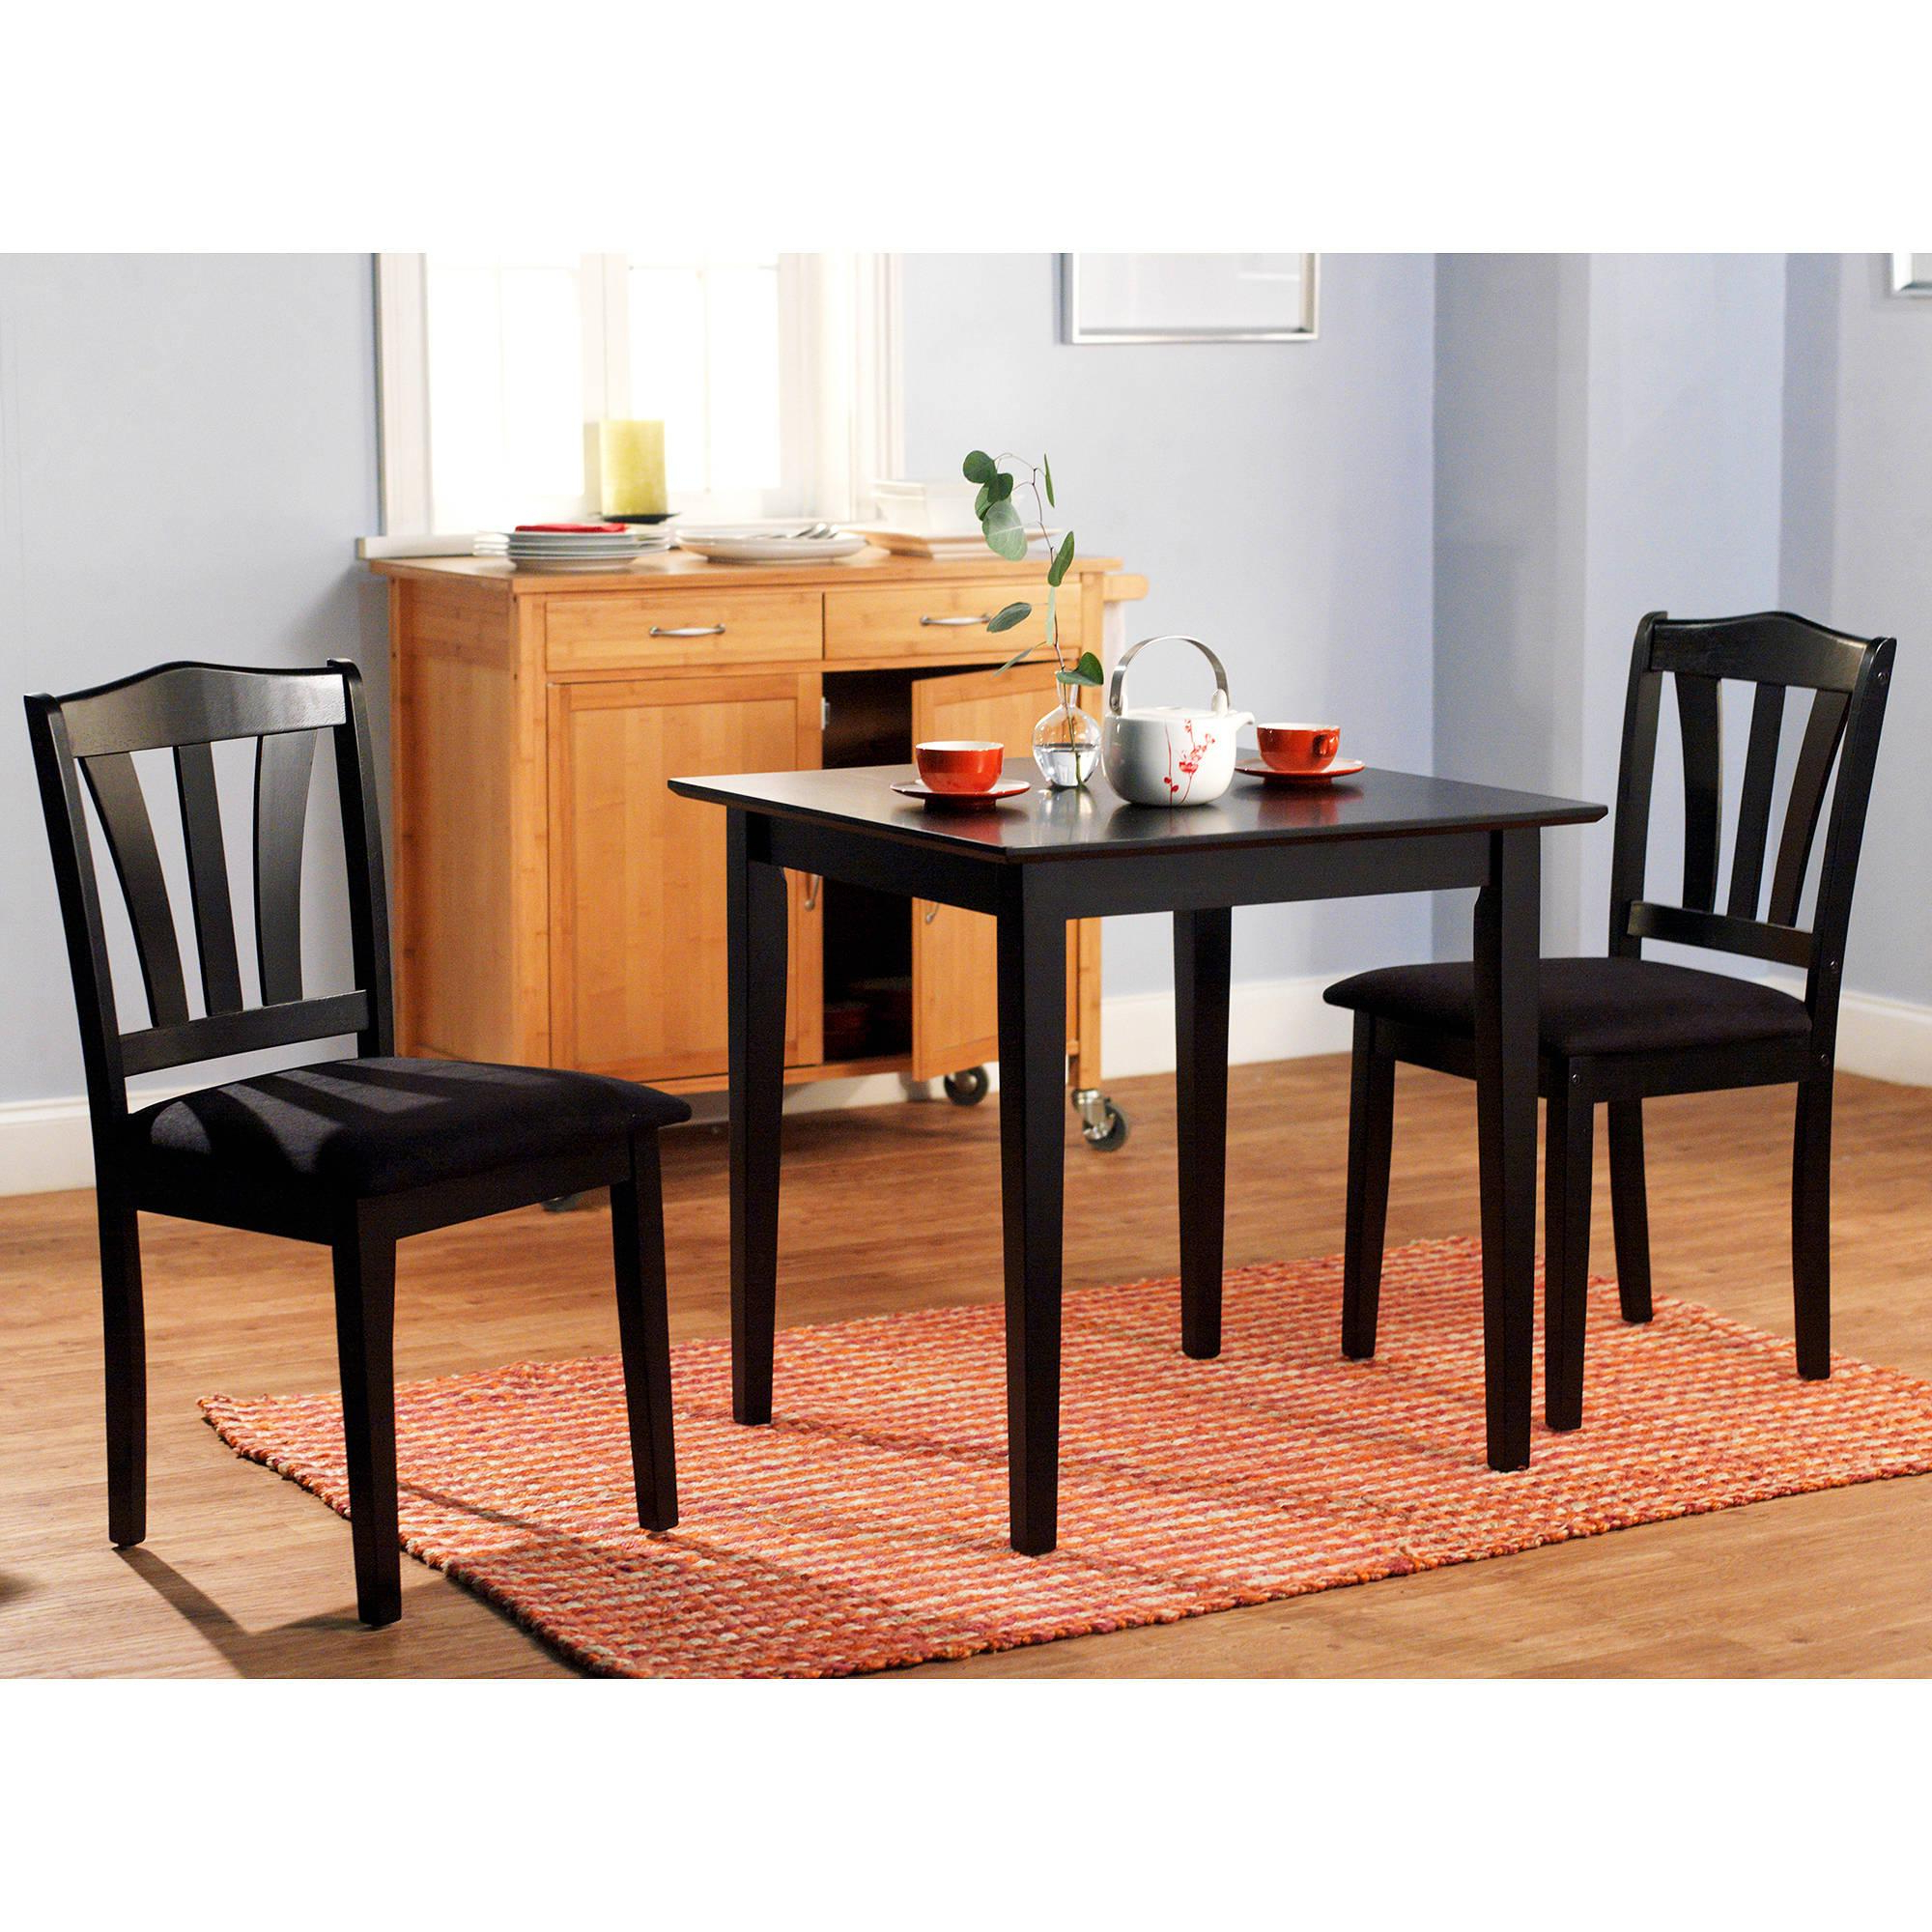 3 Piece Dining Sets For Most Popular 3 Piece Dining Set Table 2 Chairs Kitchen Room Wood Furniture (View 8 of 25)